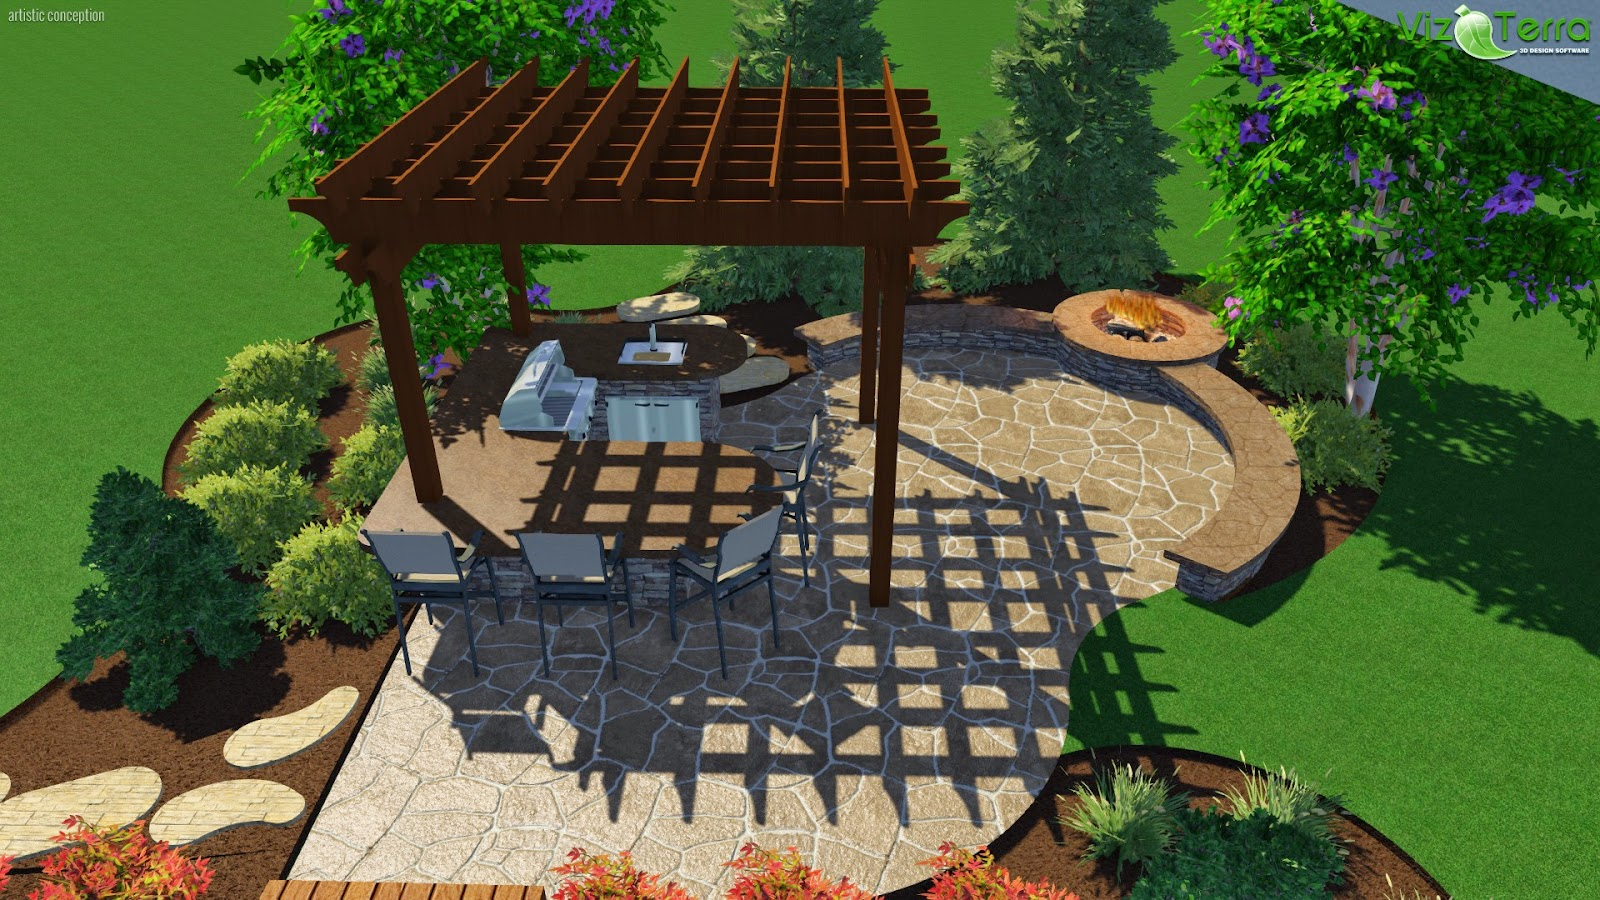 Outdoor Fire Place.jpg